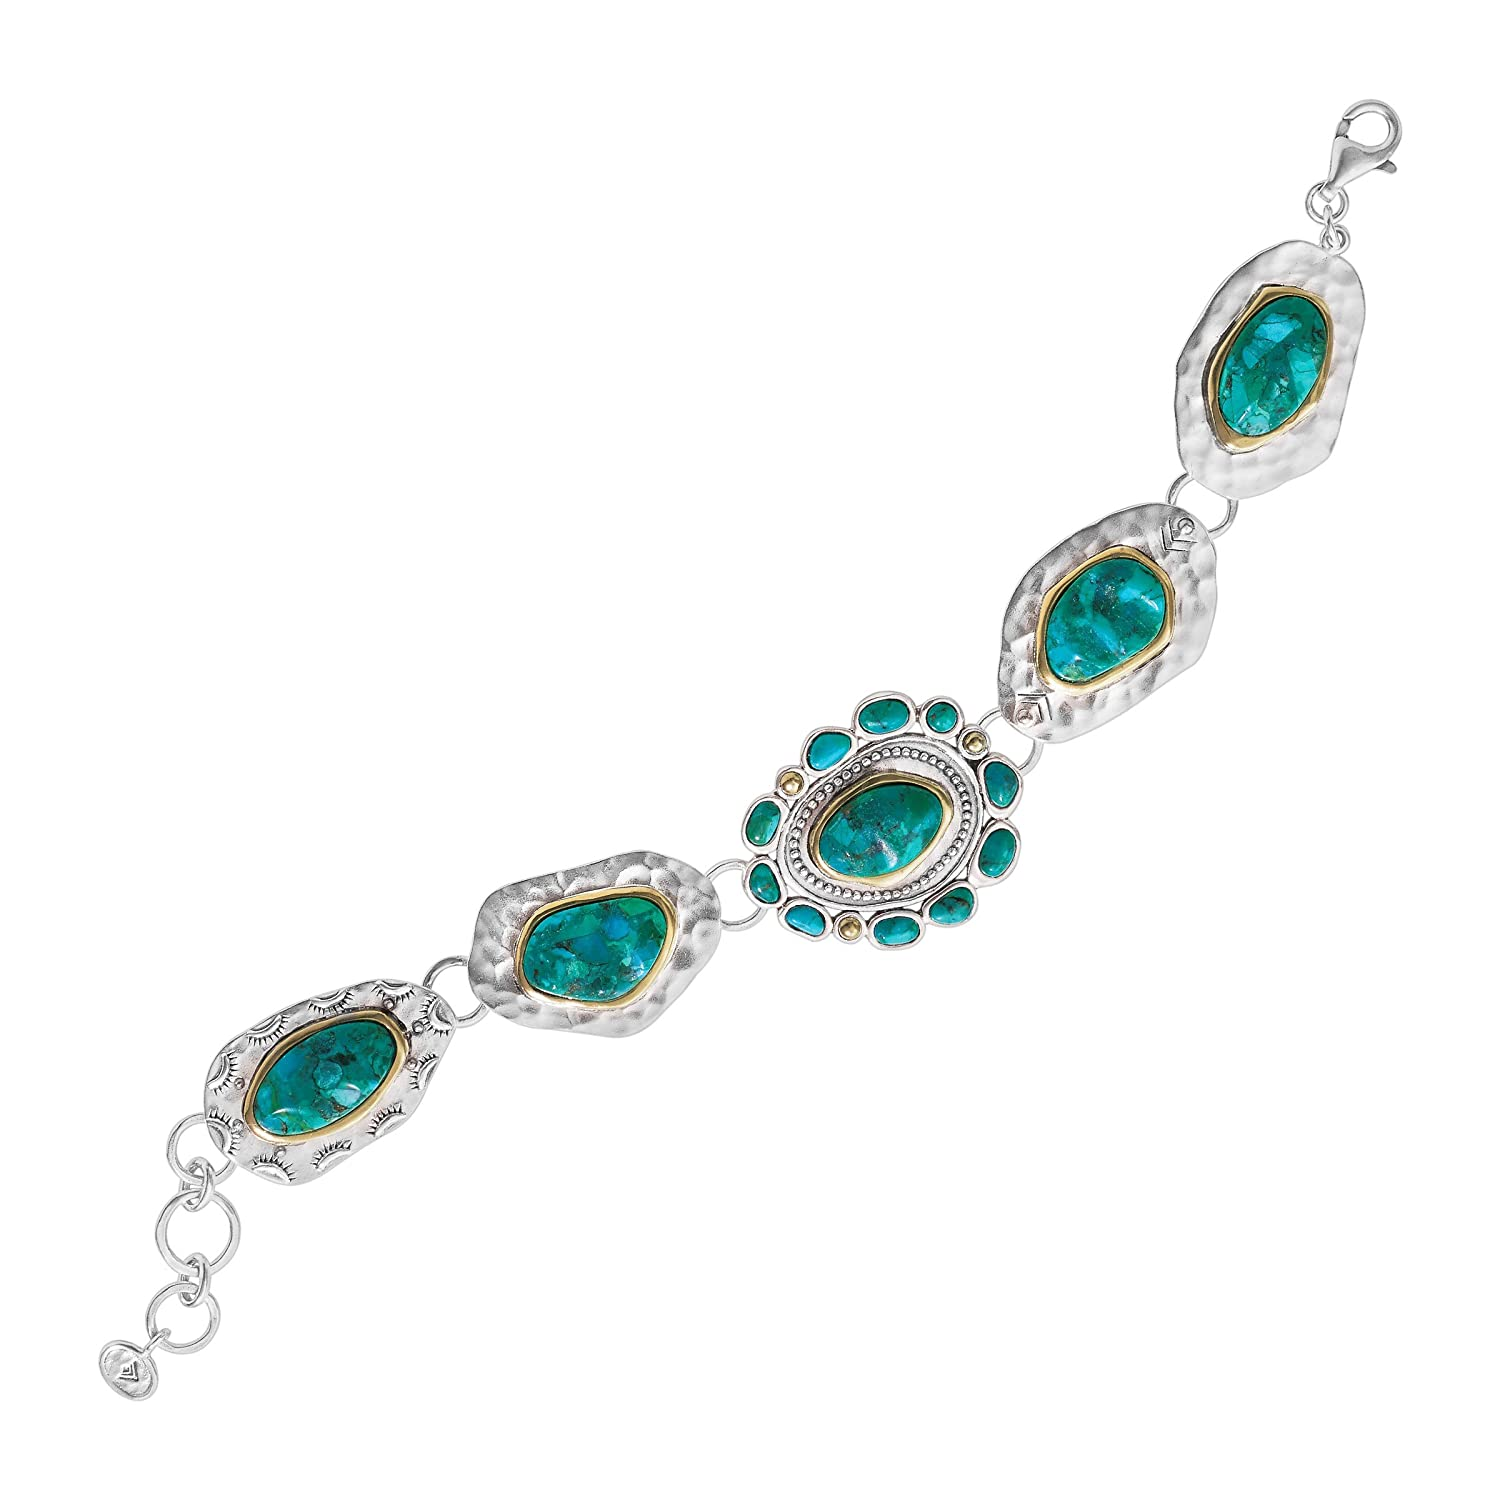 Fine Earrings Oval Green Emerald & White Cz Earrings 925 Sterling Silver To Rank First Among Similar Products Natural 6 X 8 Mm